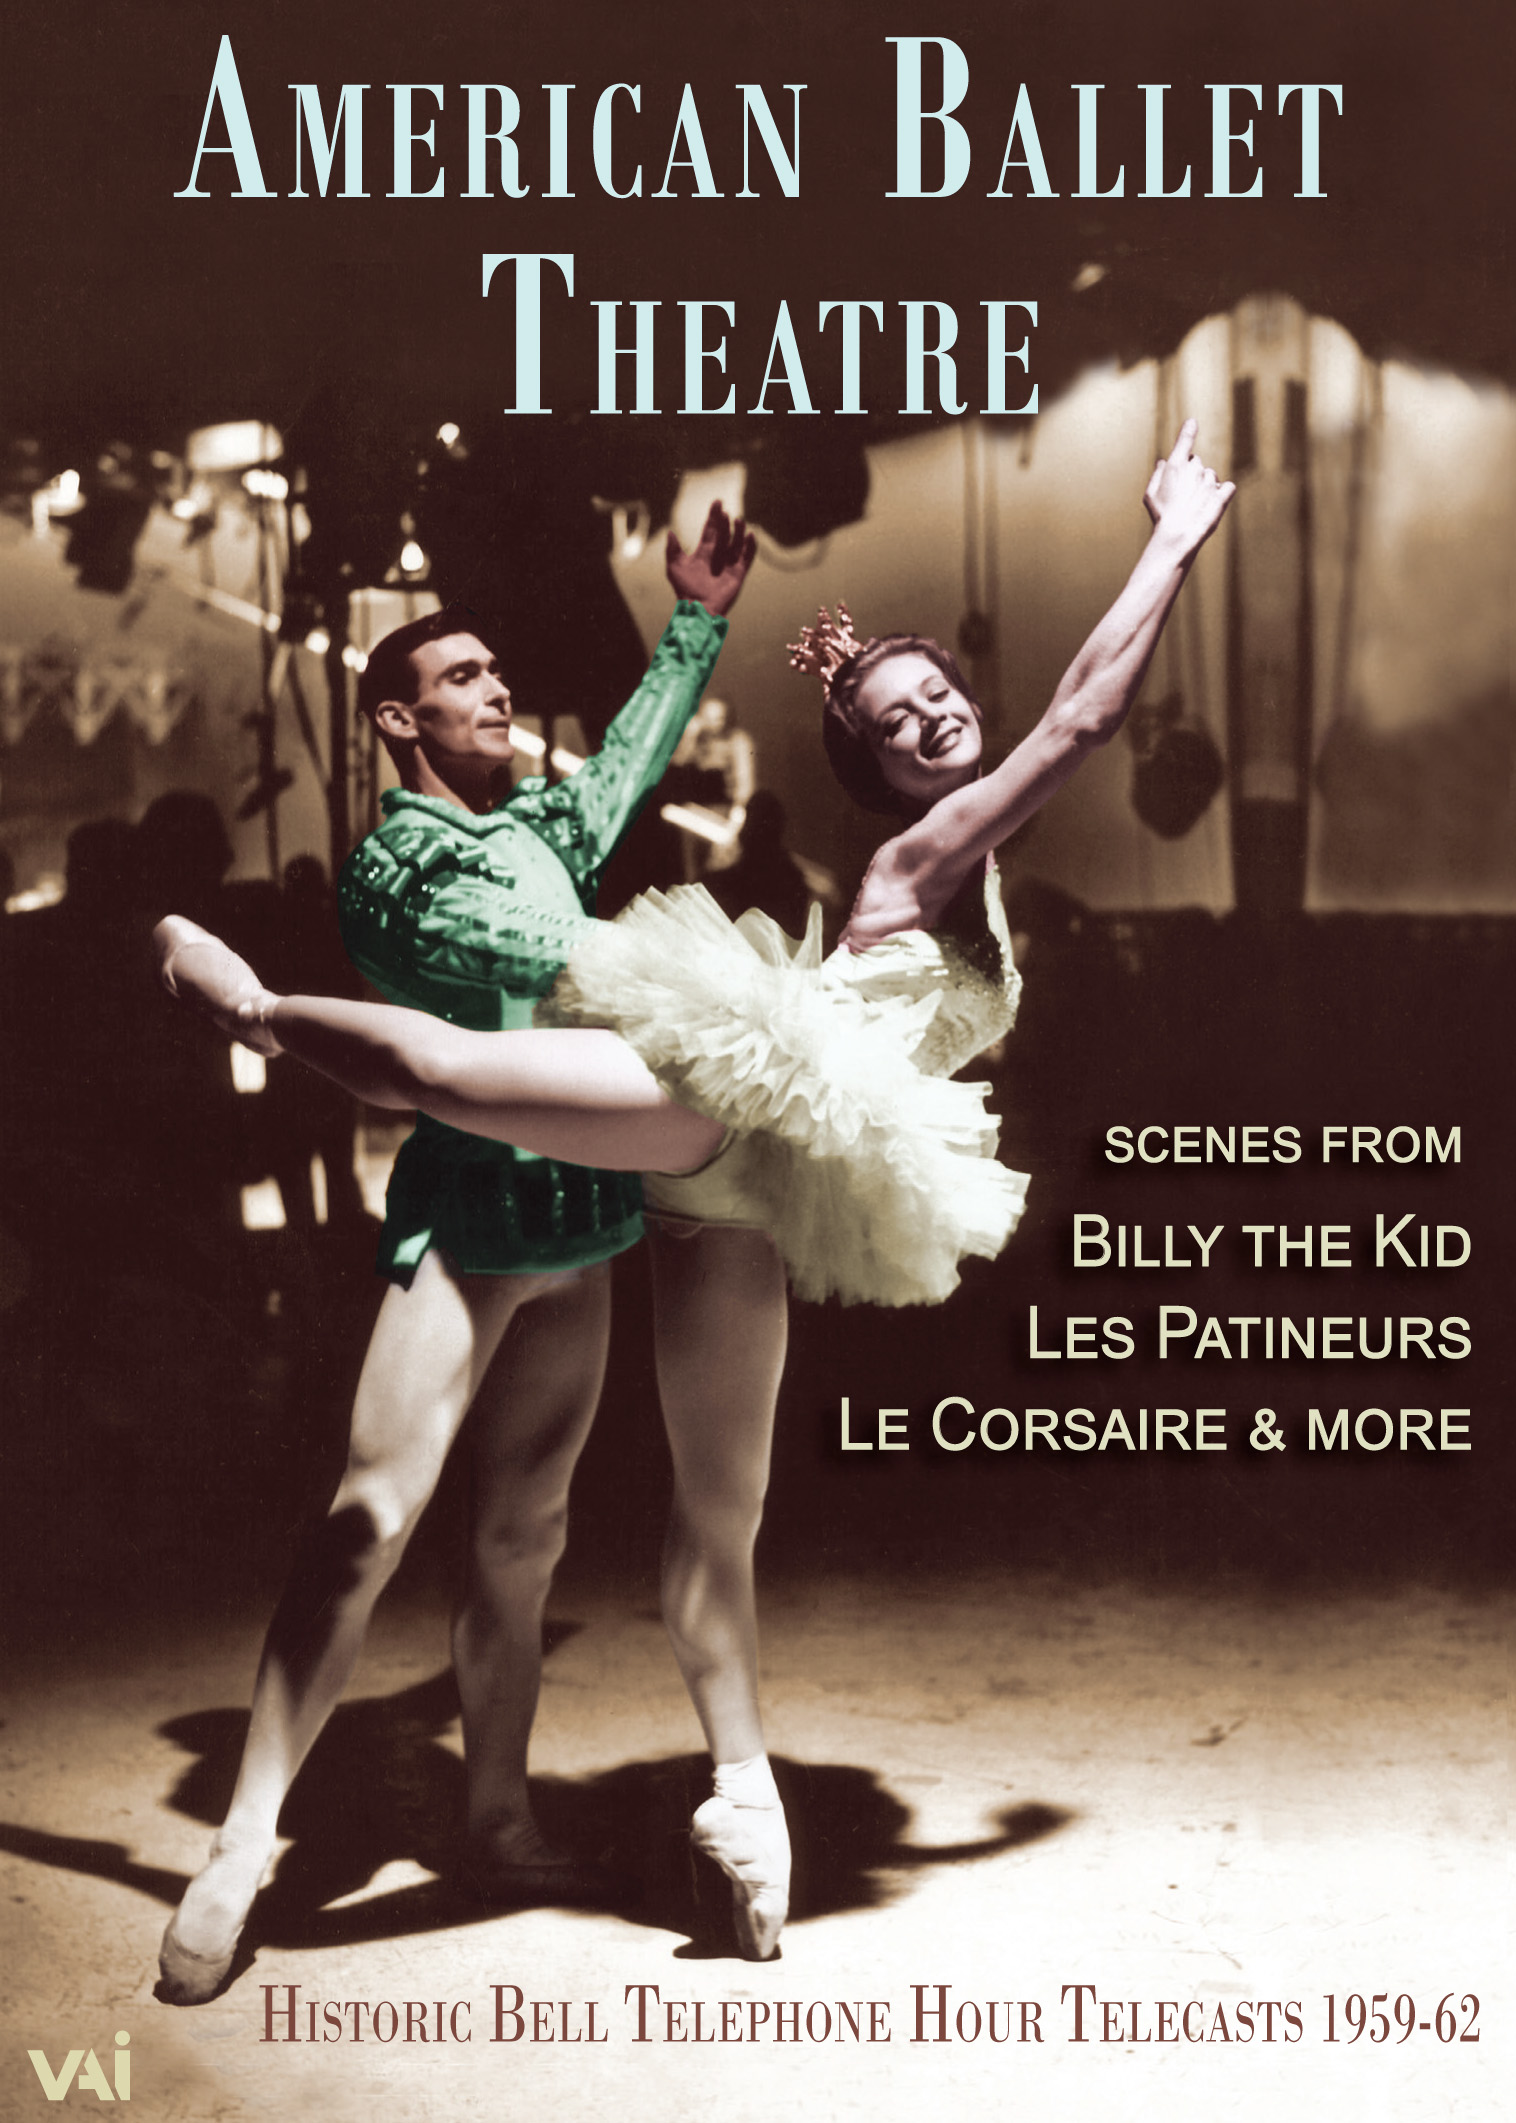 American Ballet Theatre: Historic Bell Telephone Hour Telecasts 1959-62